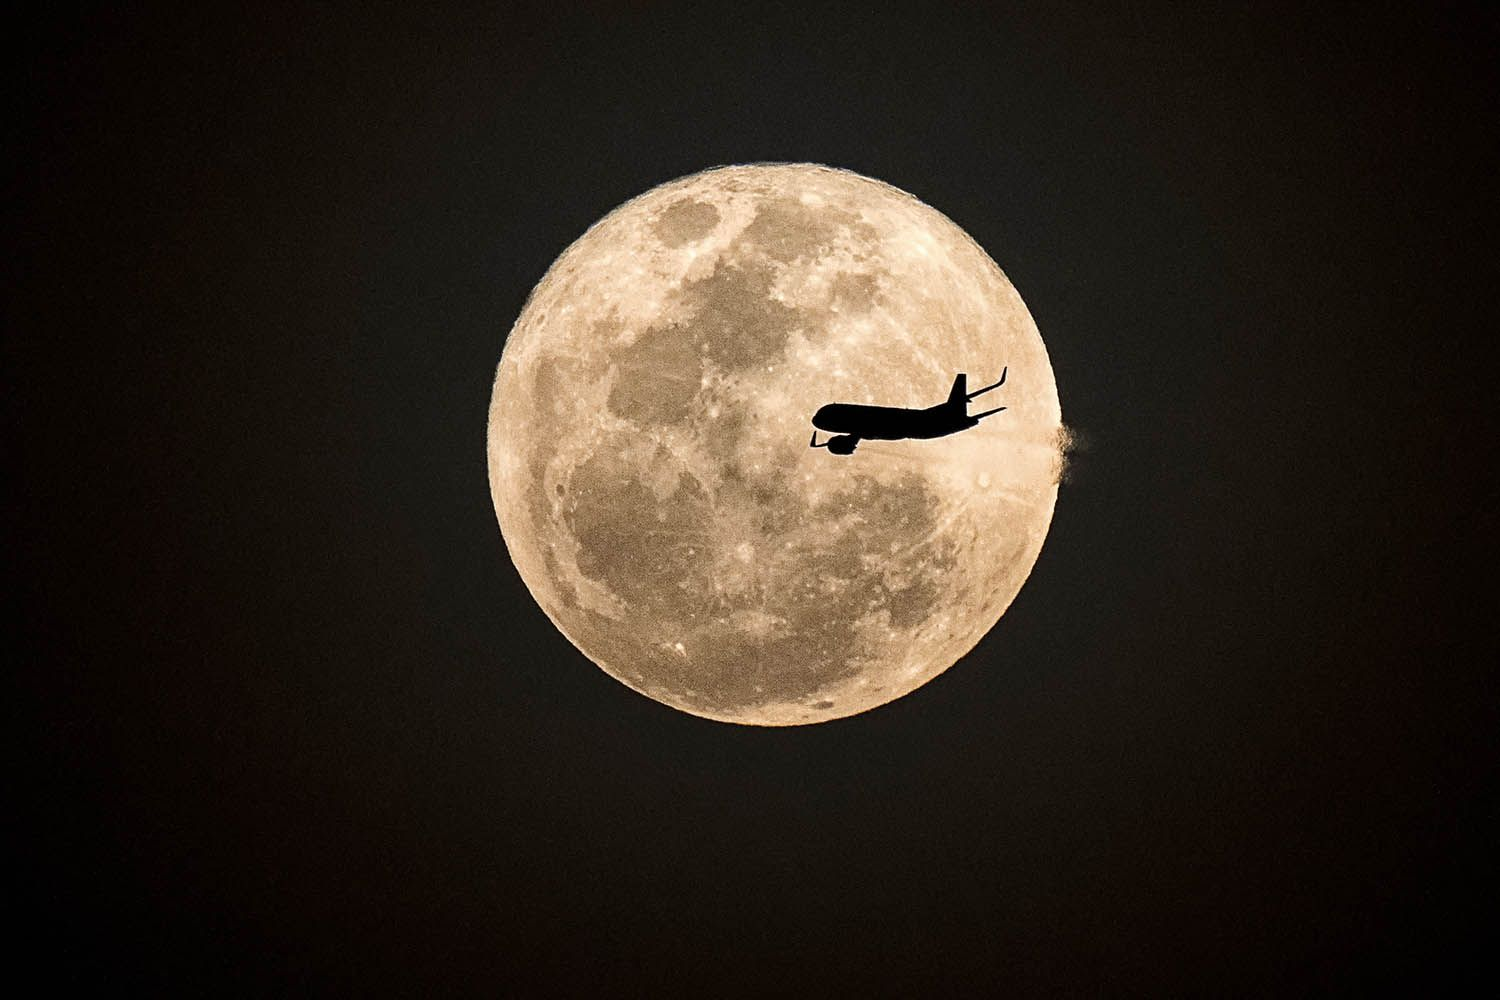 supermoon with plane in front of it